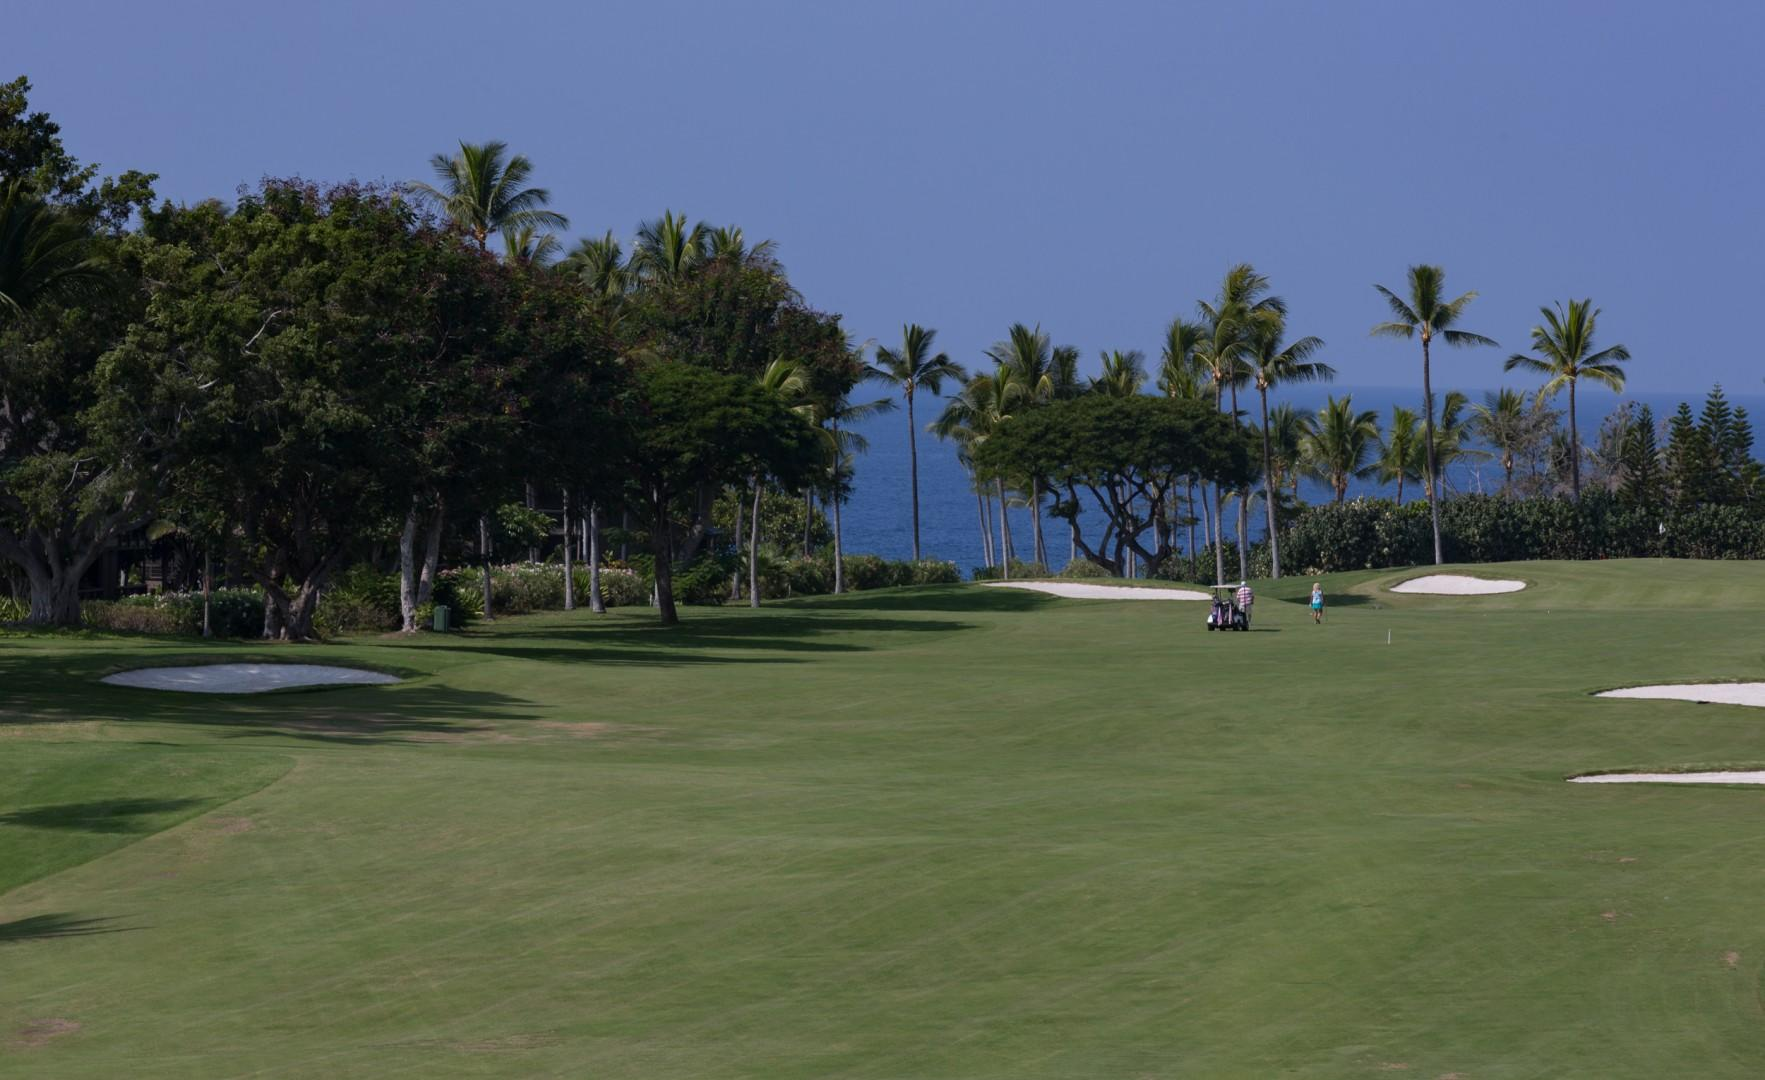 Views of the Kona Country Club Golf Course.